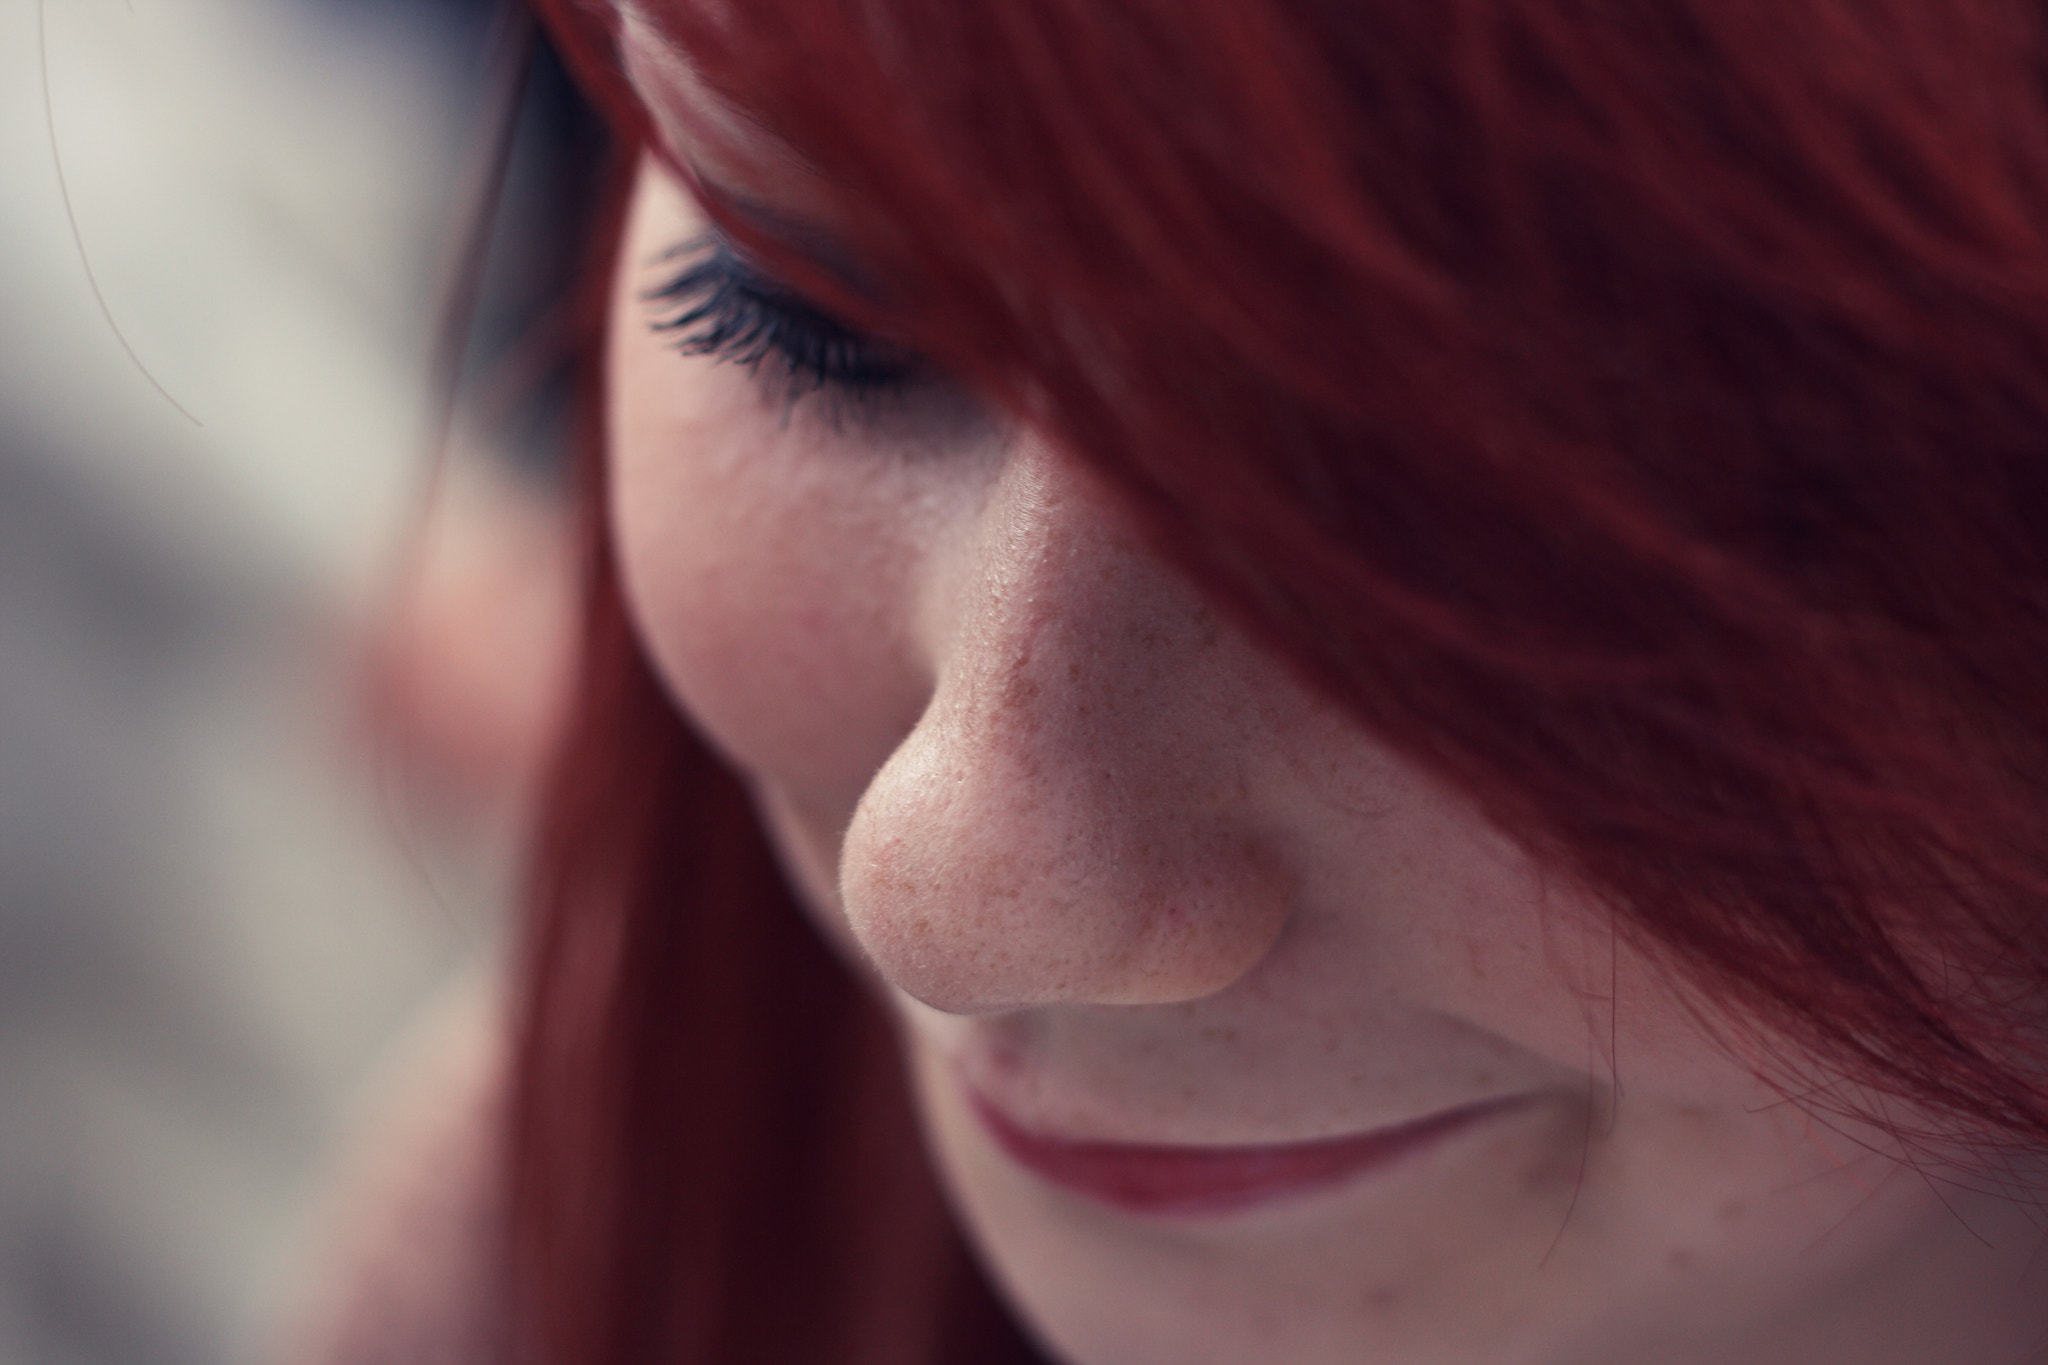 Photograph Freckles by Callum Chapman on 500px